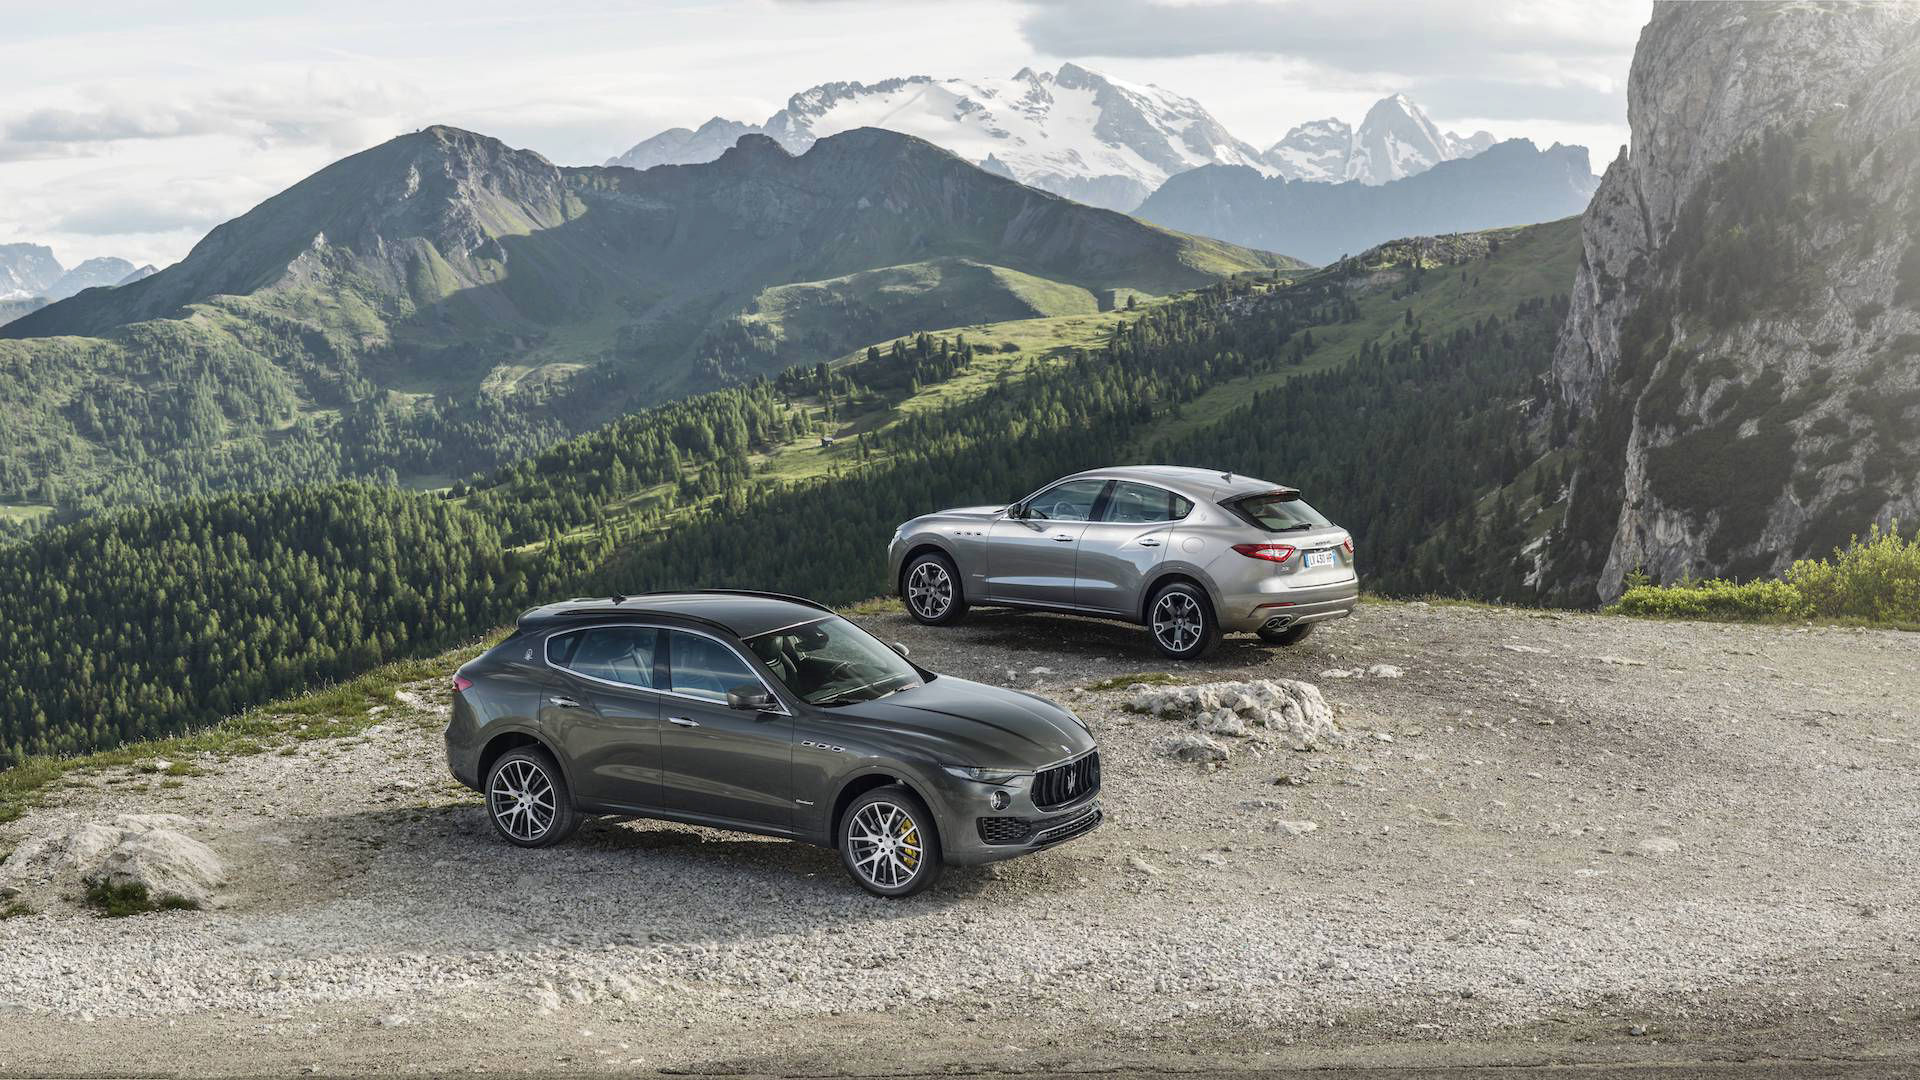 Maserati Levante GranLusso and GranSport - grey and dark grey versions, mountain landscape